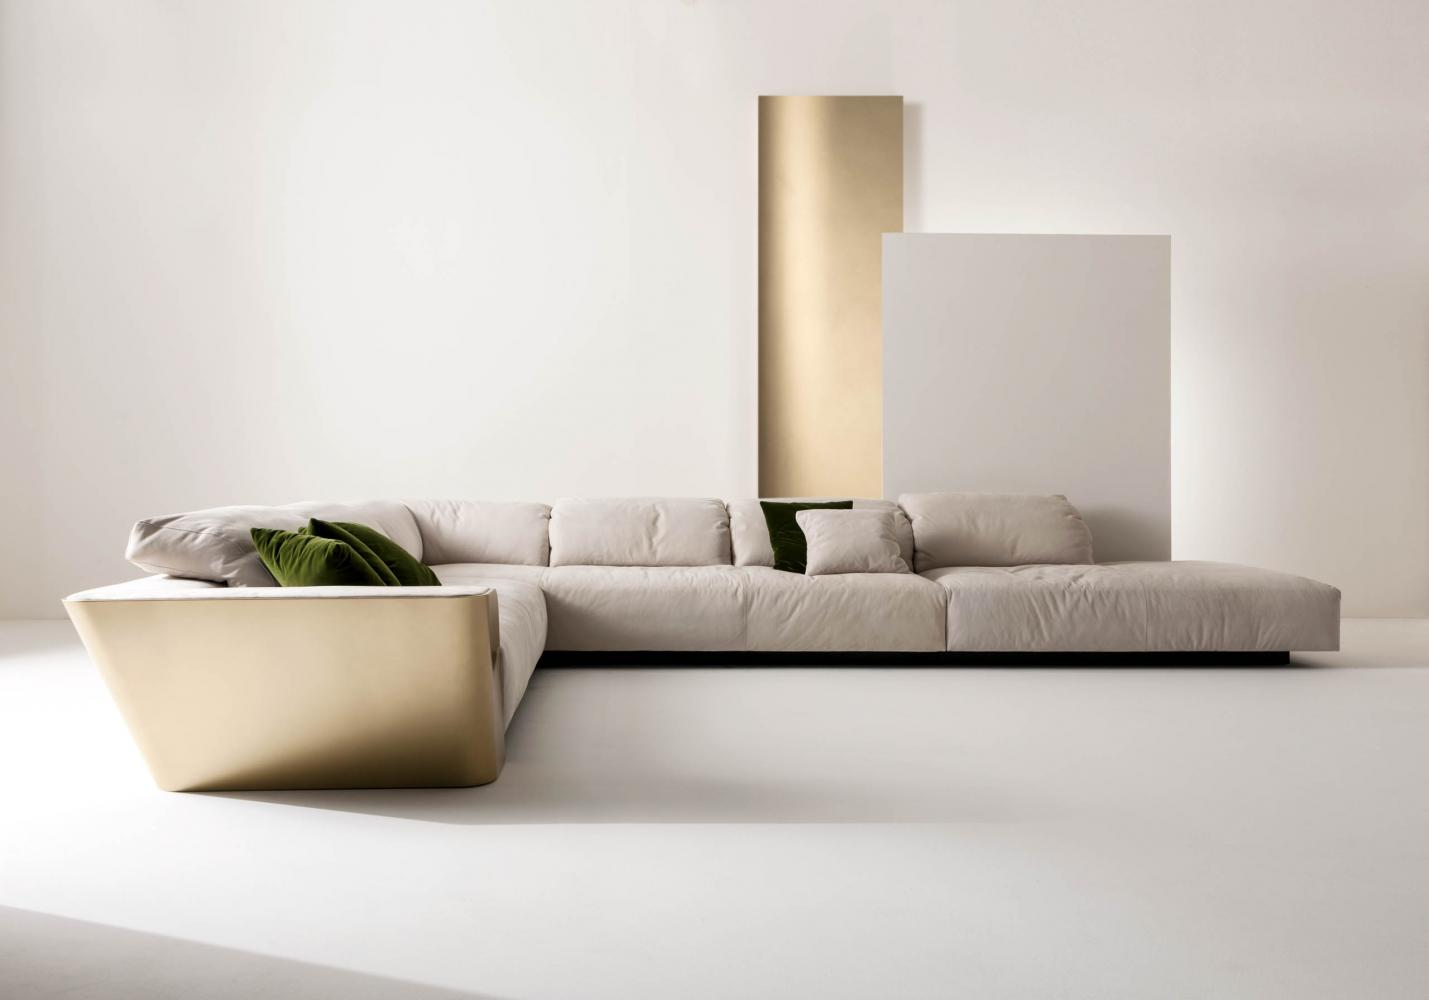 luxury modern design angular sofa in white nubuk leather and gold lacquered structure